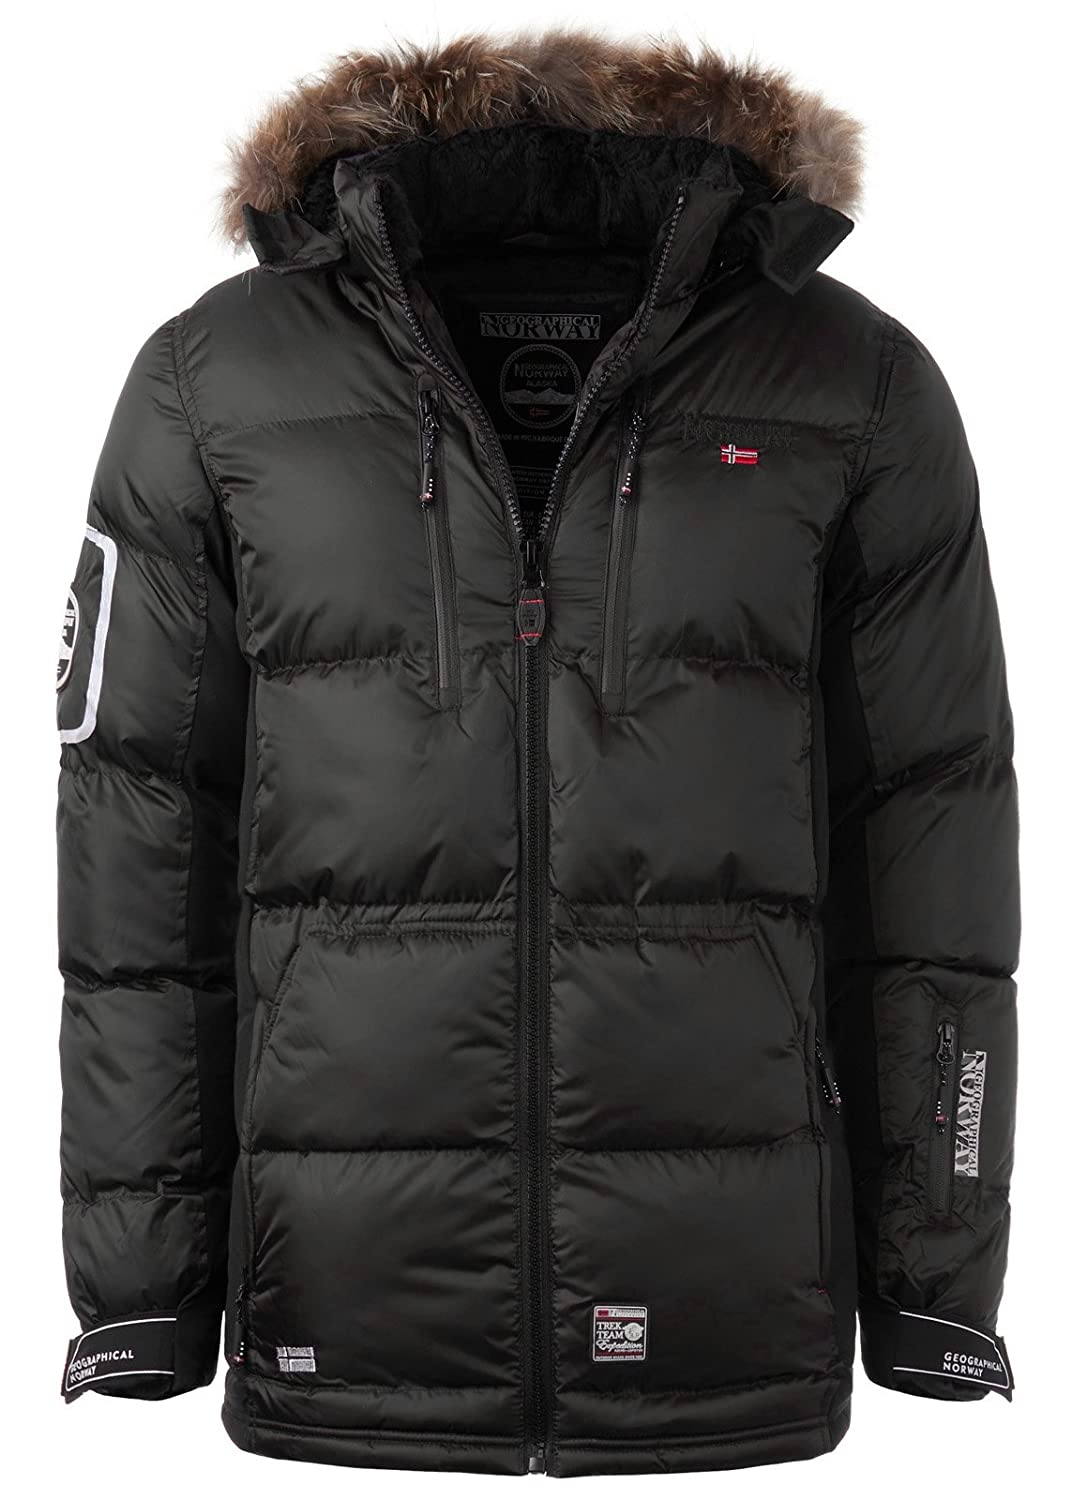 TALLA S. Geographical Norway danone Men 001 Chaqueta de Invierno